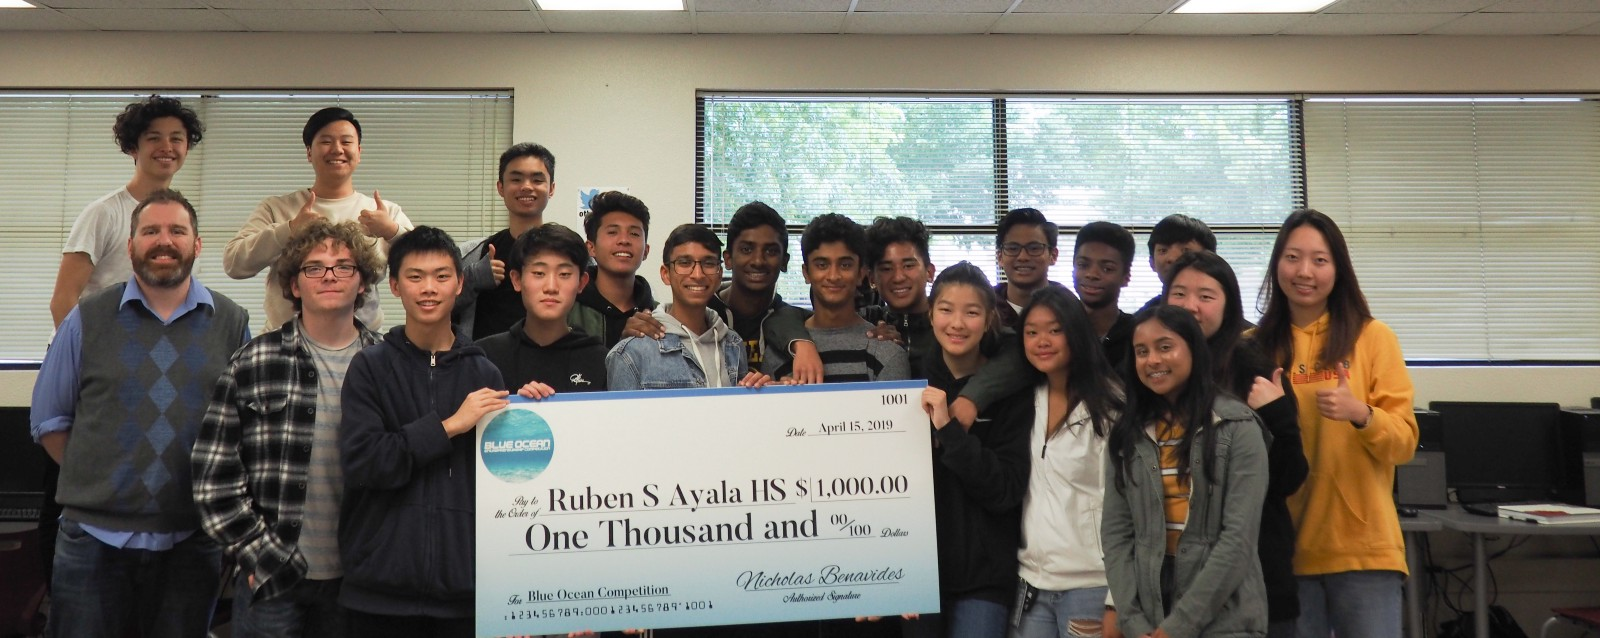 Students at Ruben S. Ayala High School in Chino Hills, CA receiving their $1k prize check with Computer Science Teacher Derek Arnell.